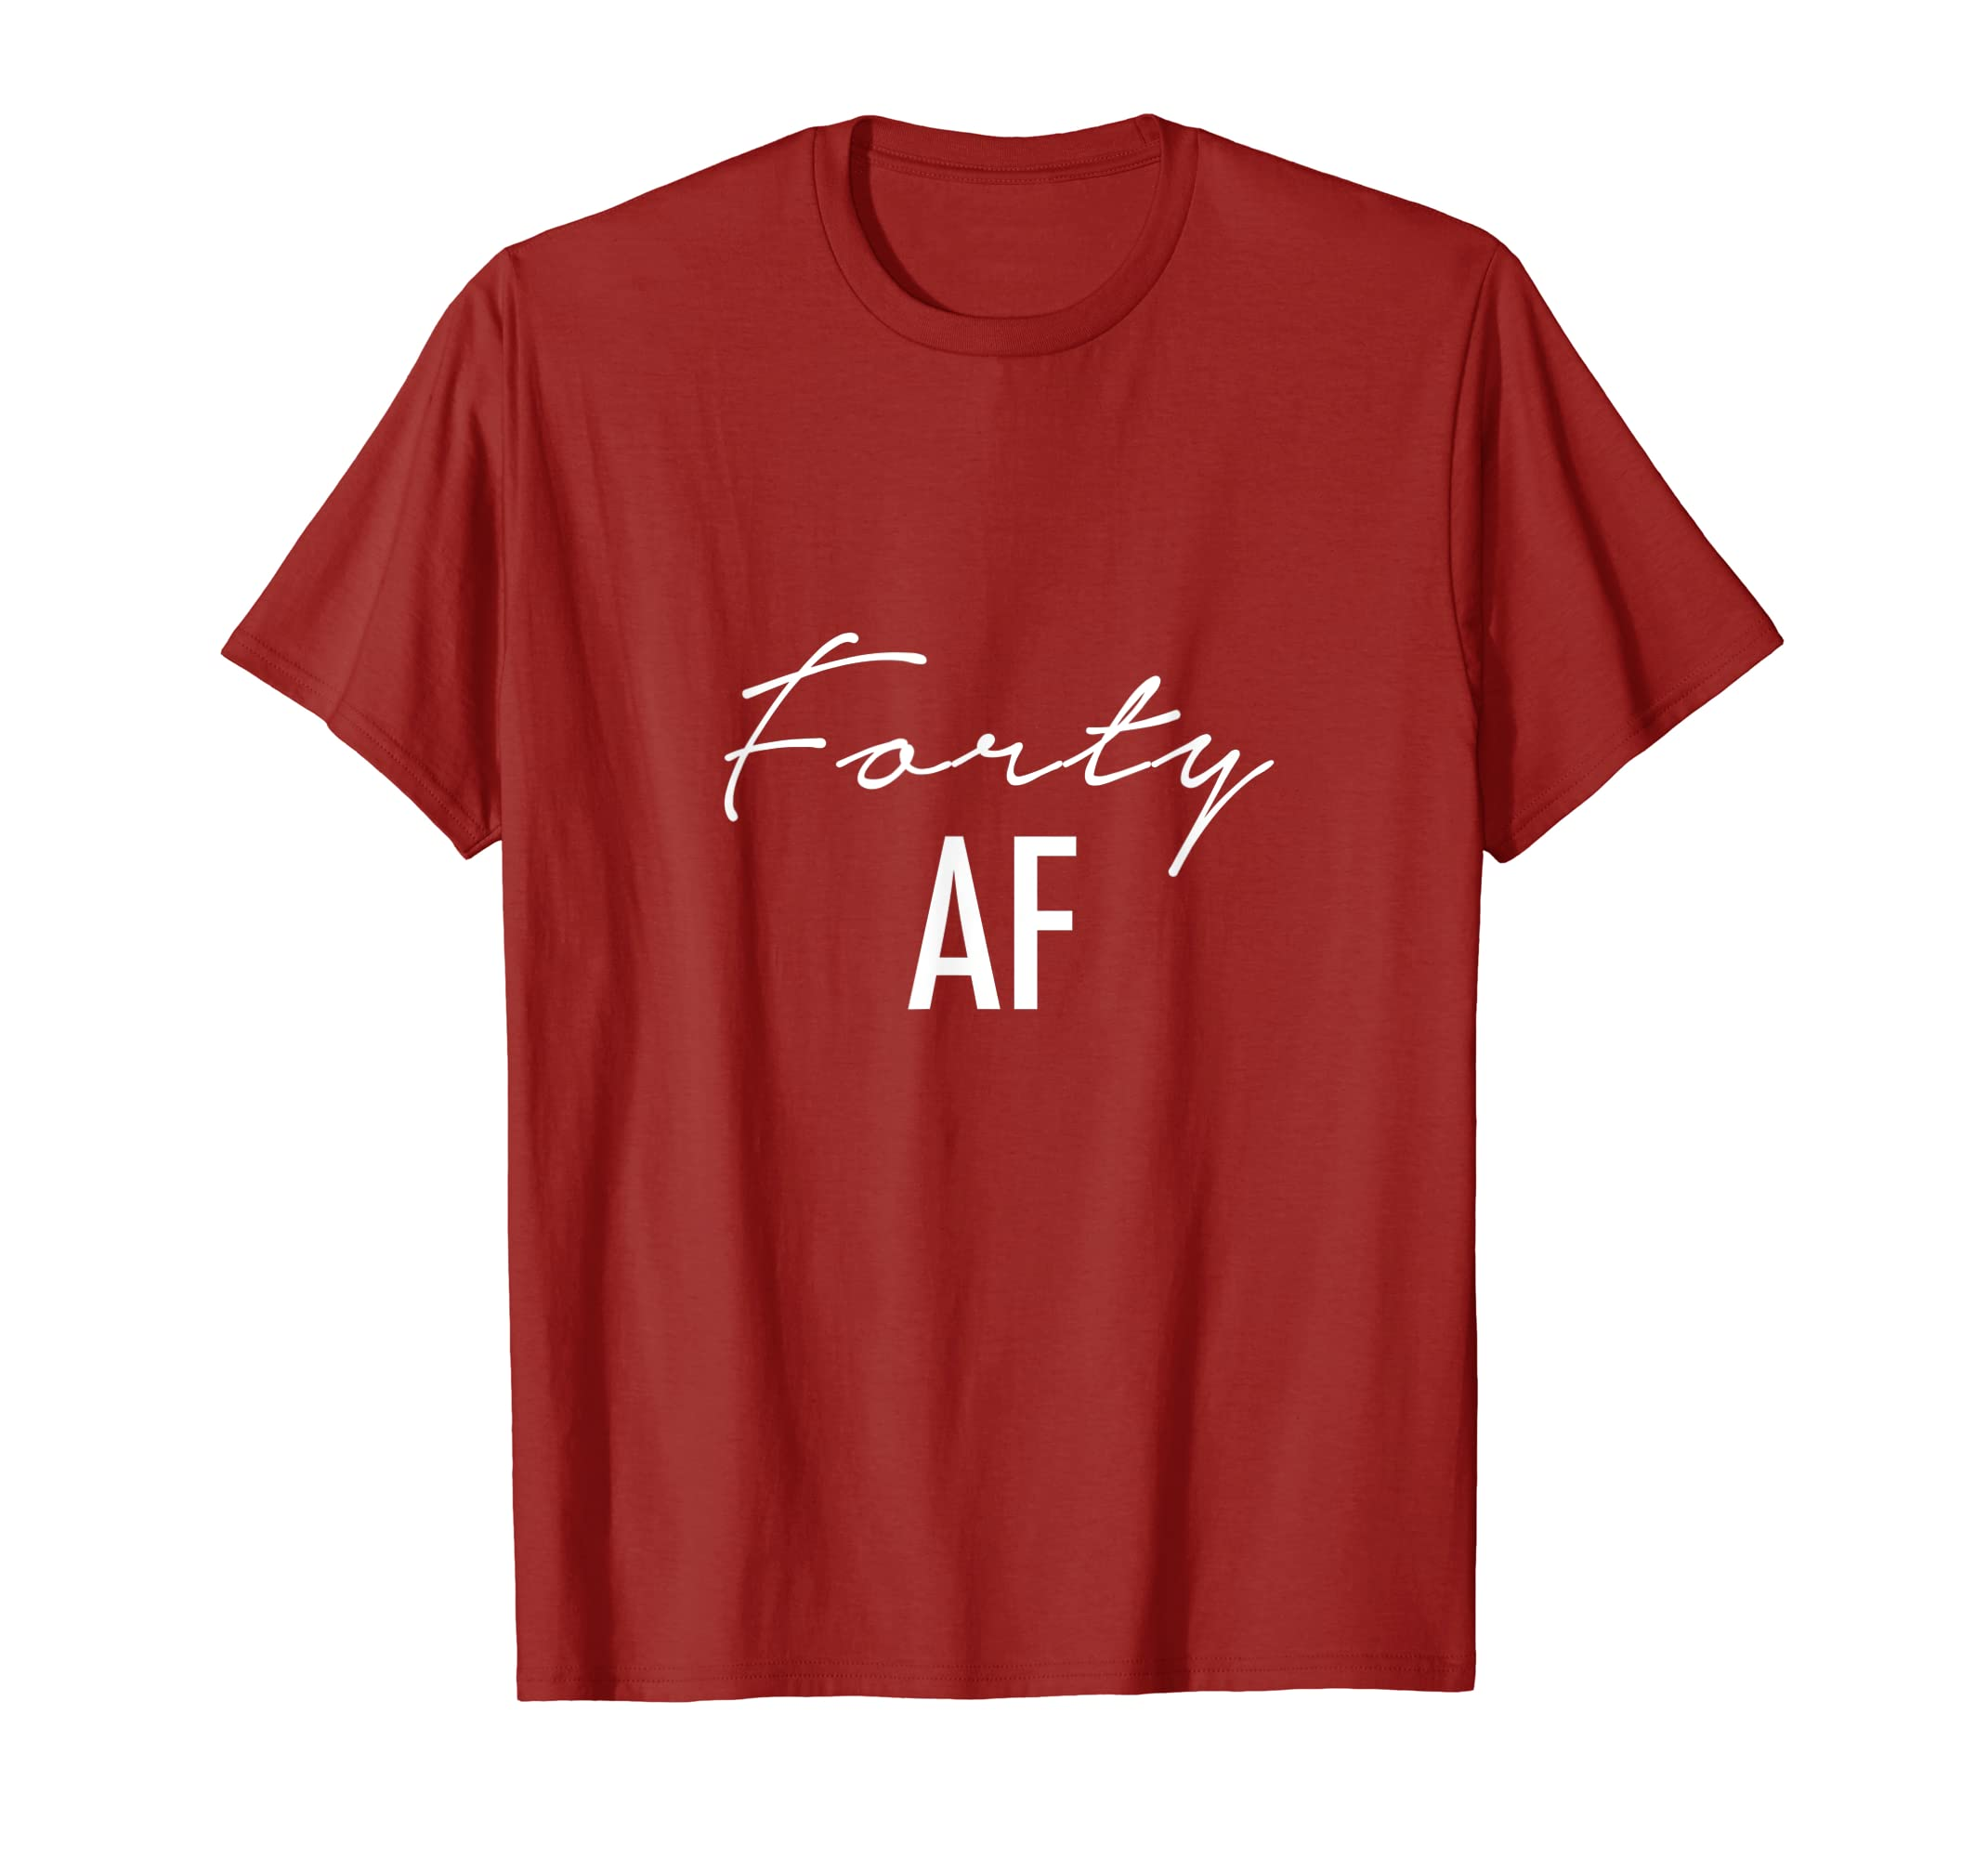 7899293950f Amazon.com  40th Birthday Shirt - Forty AF T-shirt Fabulous Forty Tee   Clothing